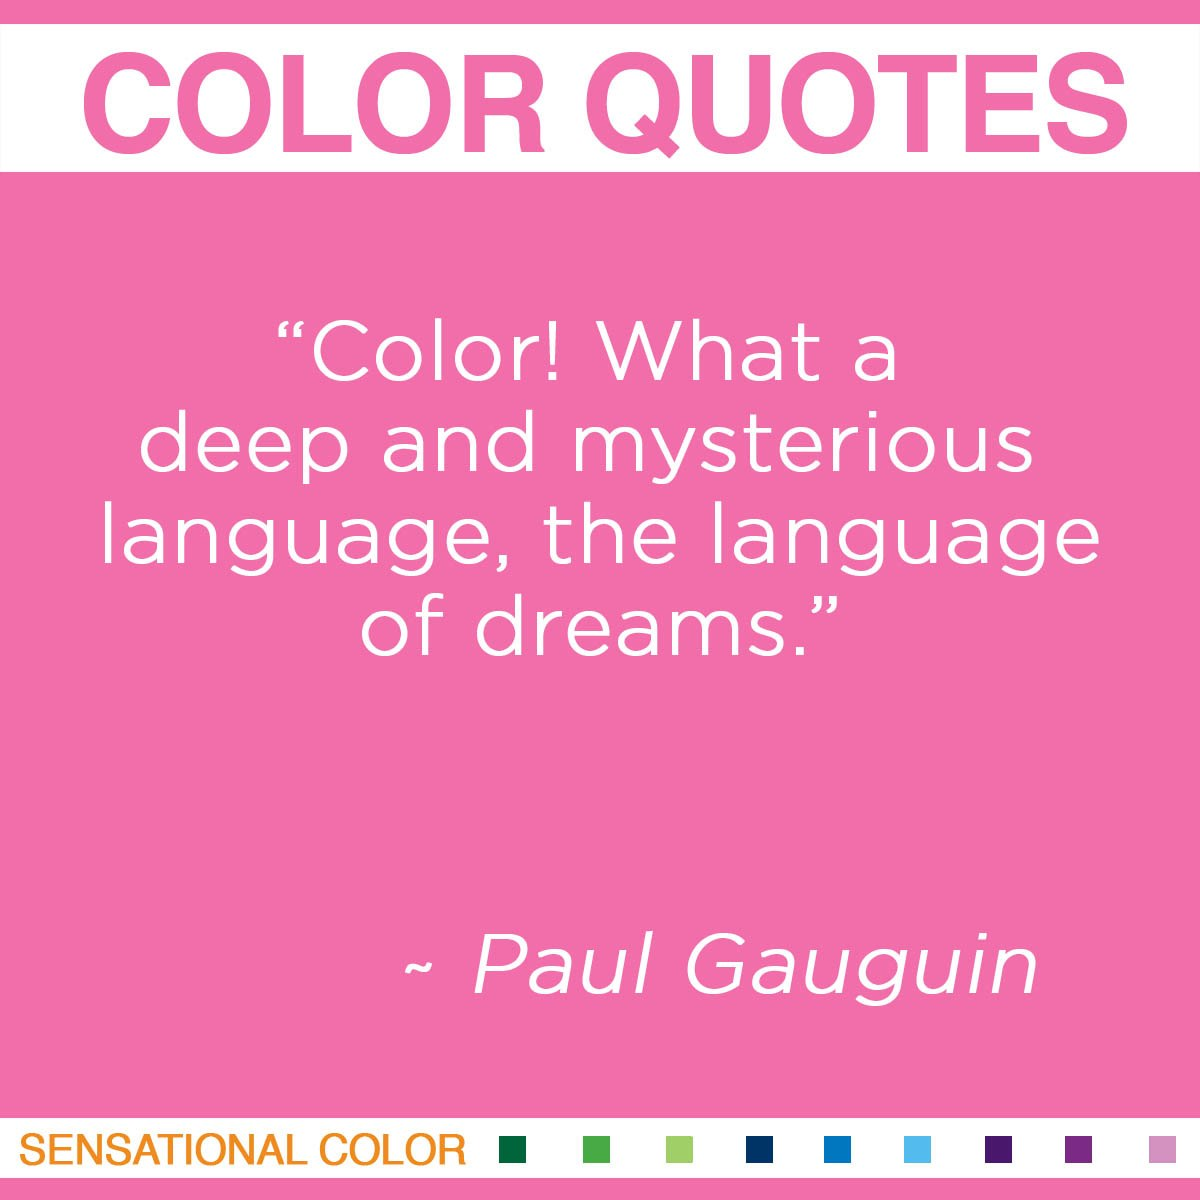 """Color! What a deep and mysterious language, the language of dreams."" - Paul Gauguin"